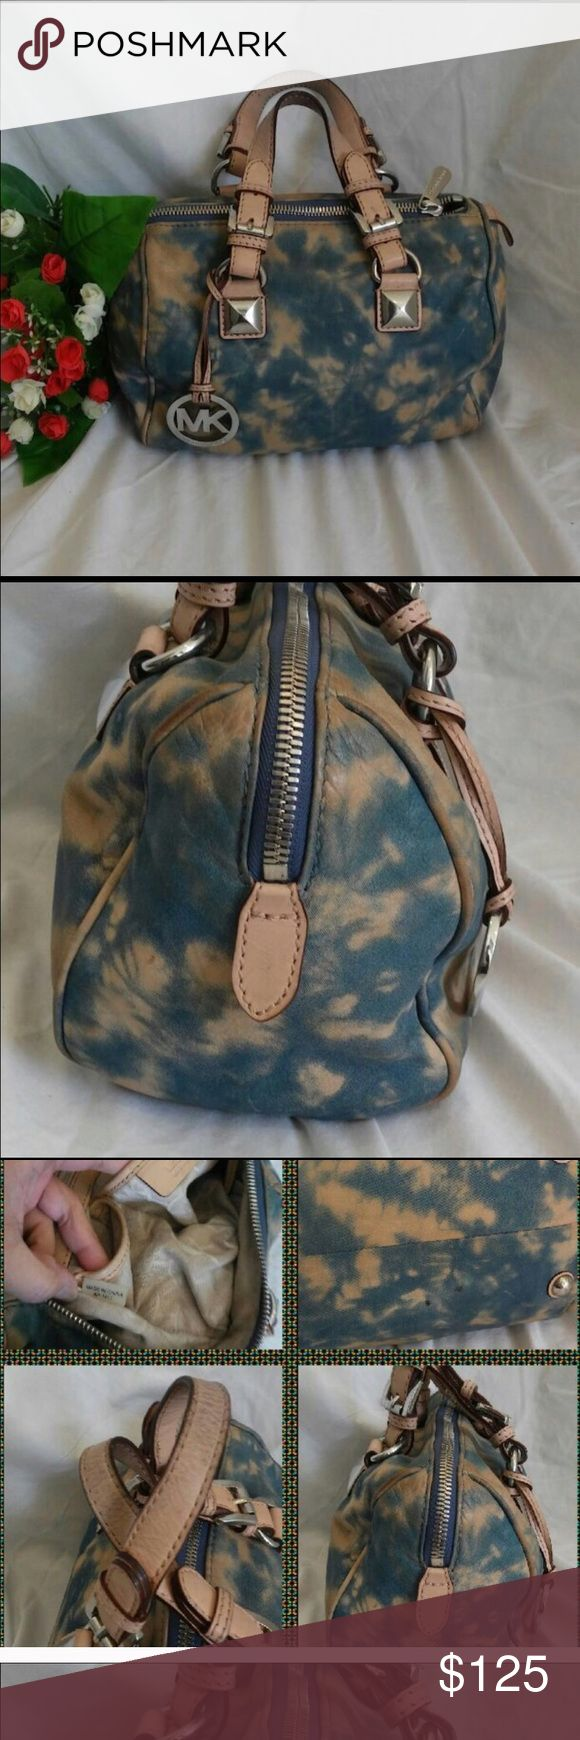 """Rare Michael Kors Purse Small """"leather like"""" feel purse. Good condition, only thing wrong is one of the bottom legs fell off. You can't tell unless you look at the bottom. Super cute and simple! Michael Kors Bags Satchels"""